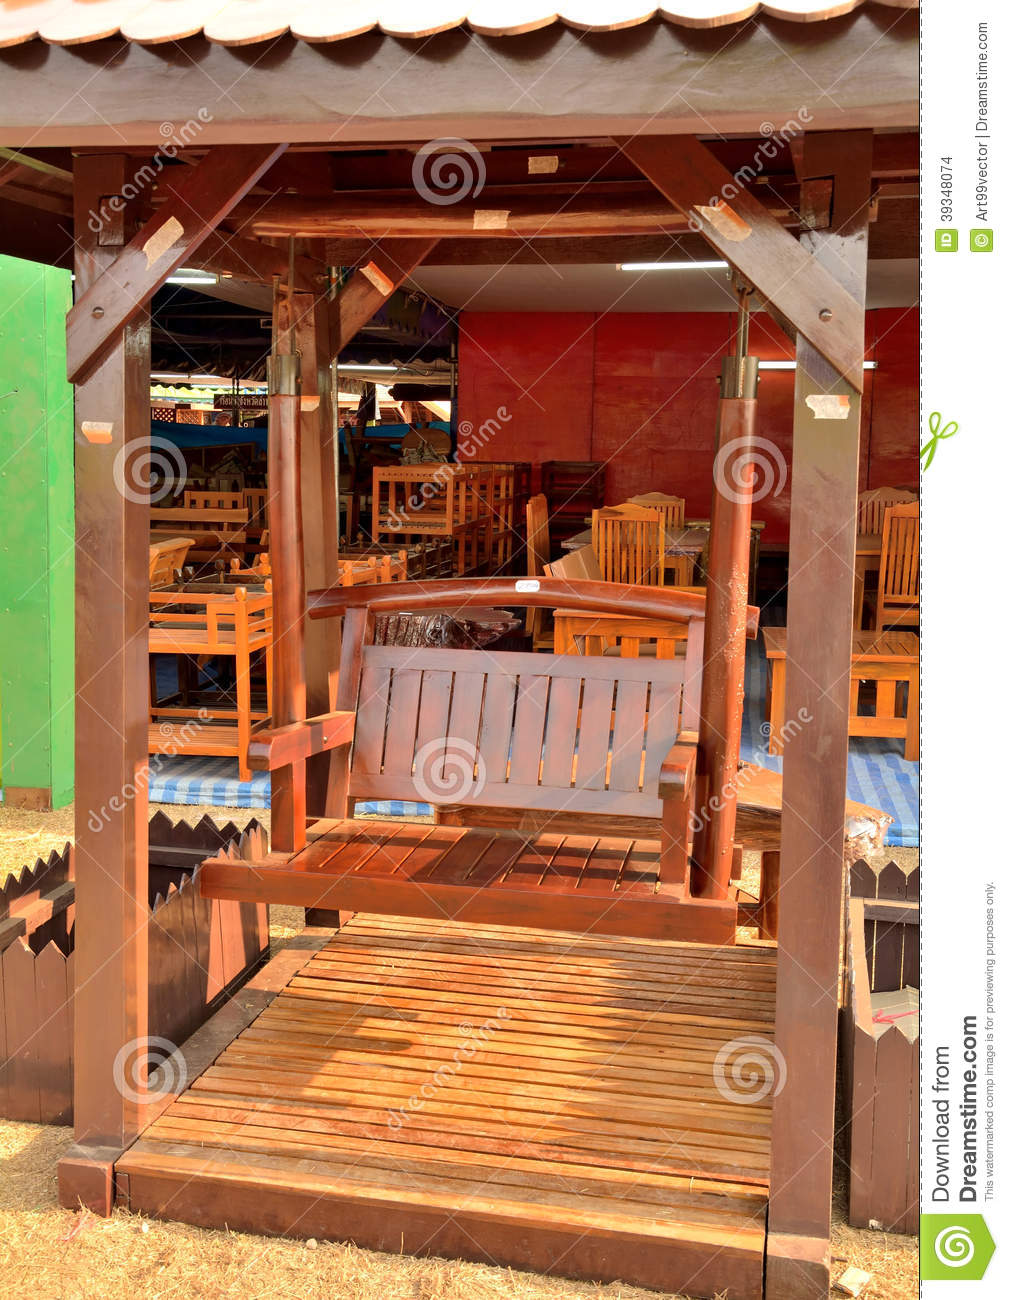 Wood design thailand stock photo image 39348074 for Furniture design thailand